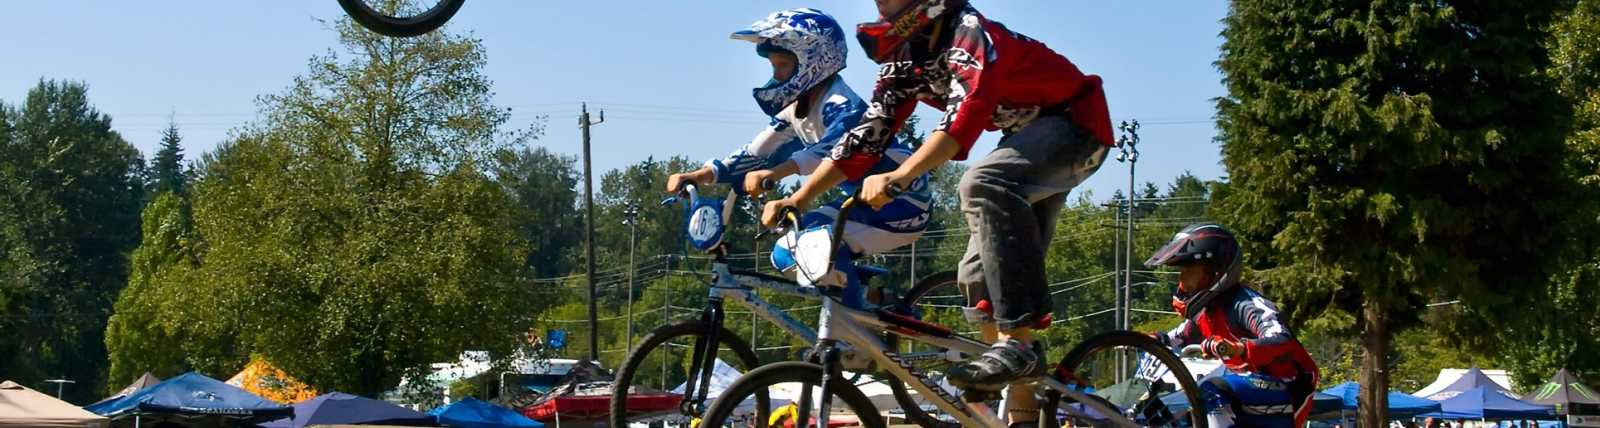 North SeaTac BMX Club